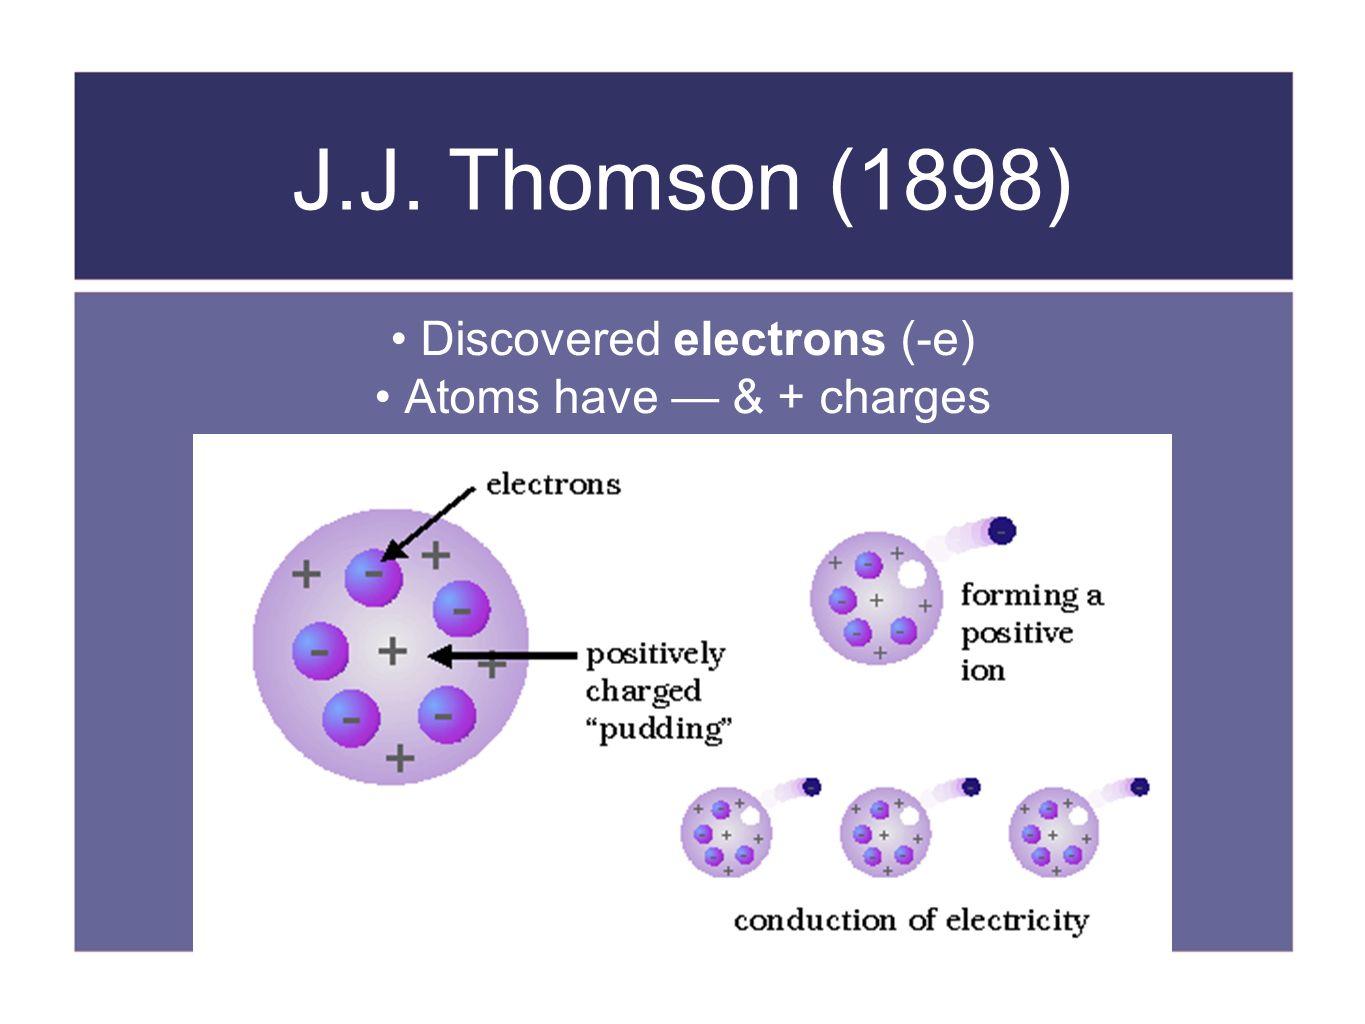 a discussion of jj thomsons modern atom model Chemistry & physics: history of the atom (dalton, thomson, rutherford, and bohr models) the model of the atom has undergone steady changes to reflect experimental results, starting with john dalton's model (1803), to jj thomson's model (1897), to ernest ruthford's model (1909), to niels bohr's model (1913.